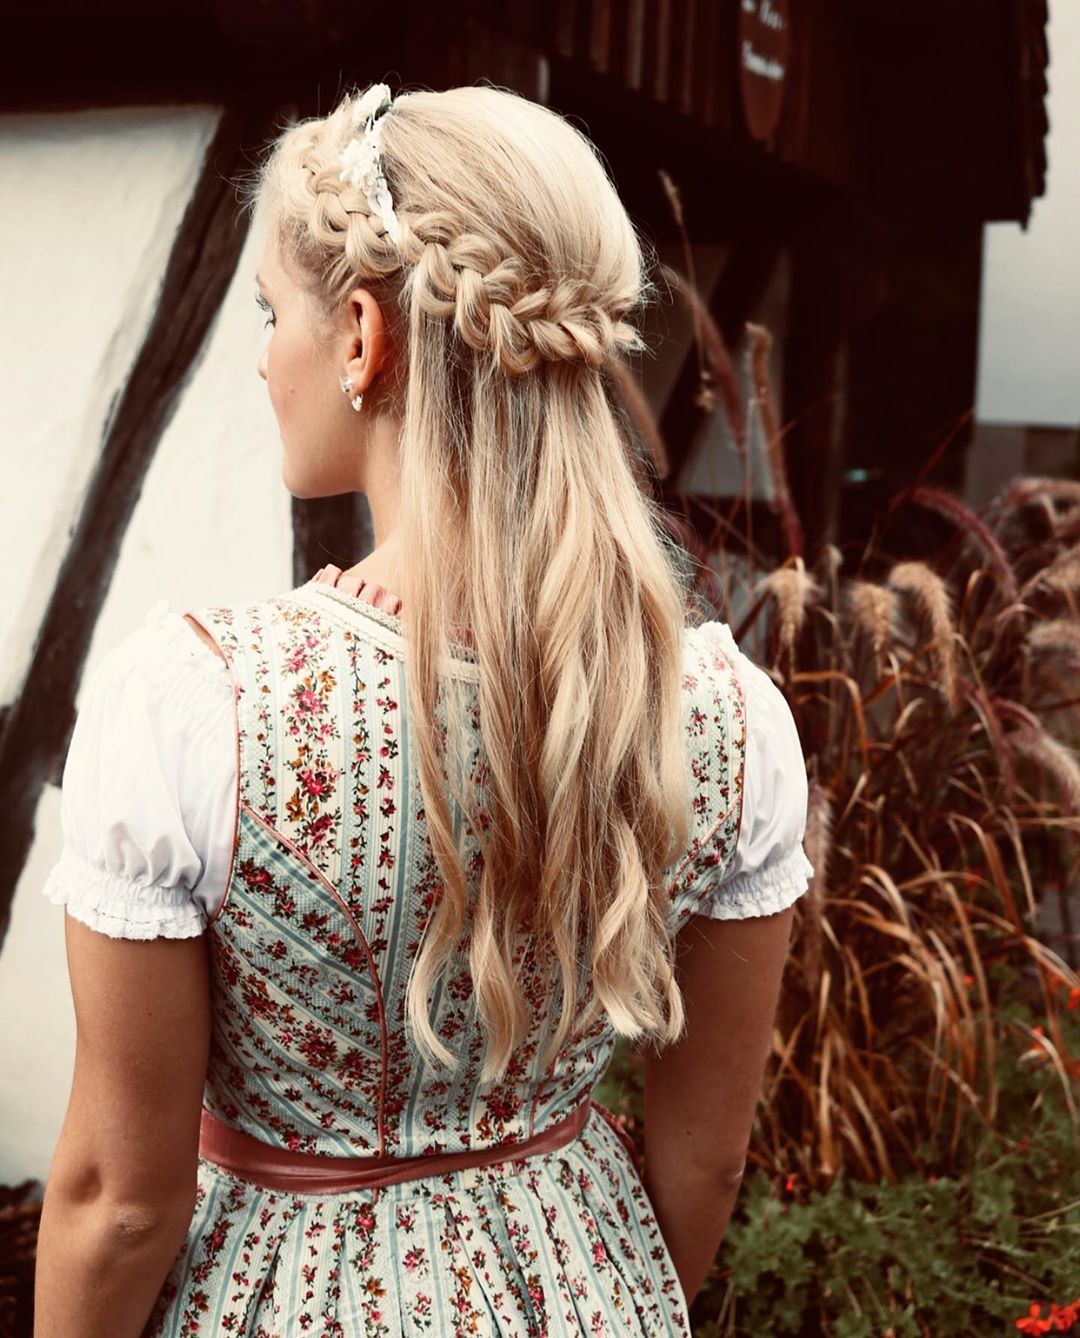 Paula Kreidler On Instagram Life Isn T Perfect But Your Hair Can Be Wasen Dirndl Oktoberfest Oktoberfestfrisur Oktoberfest Frisur Your Hair Dirndl